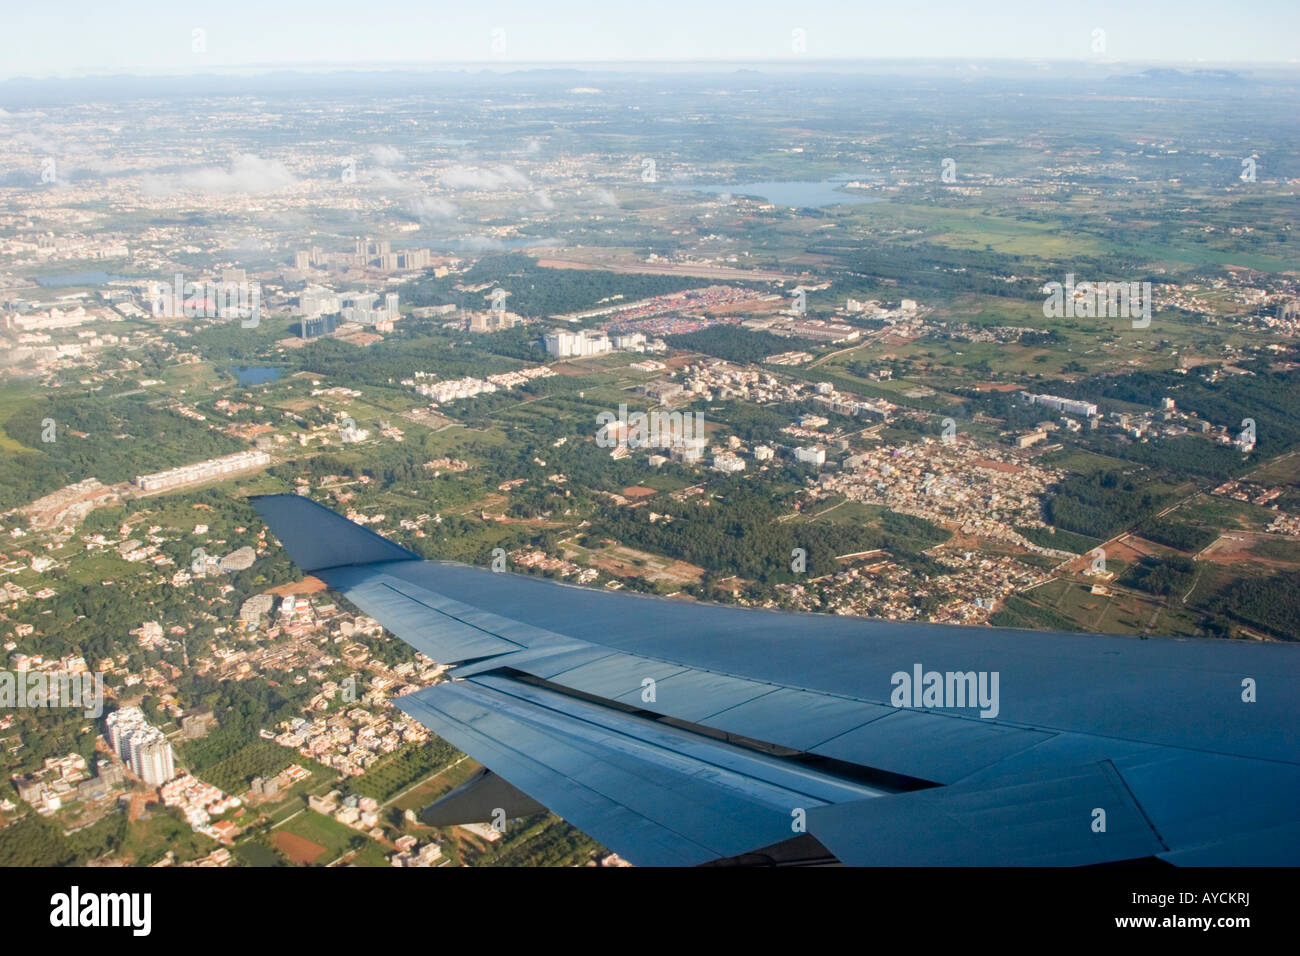 View from aeroplane window of the suburbs of Banaglore - Stock Image